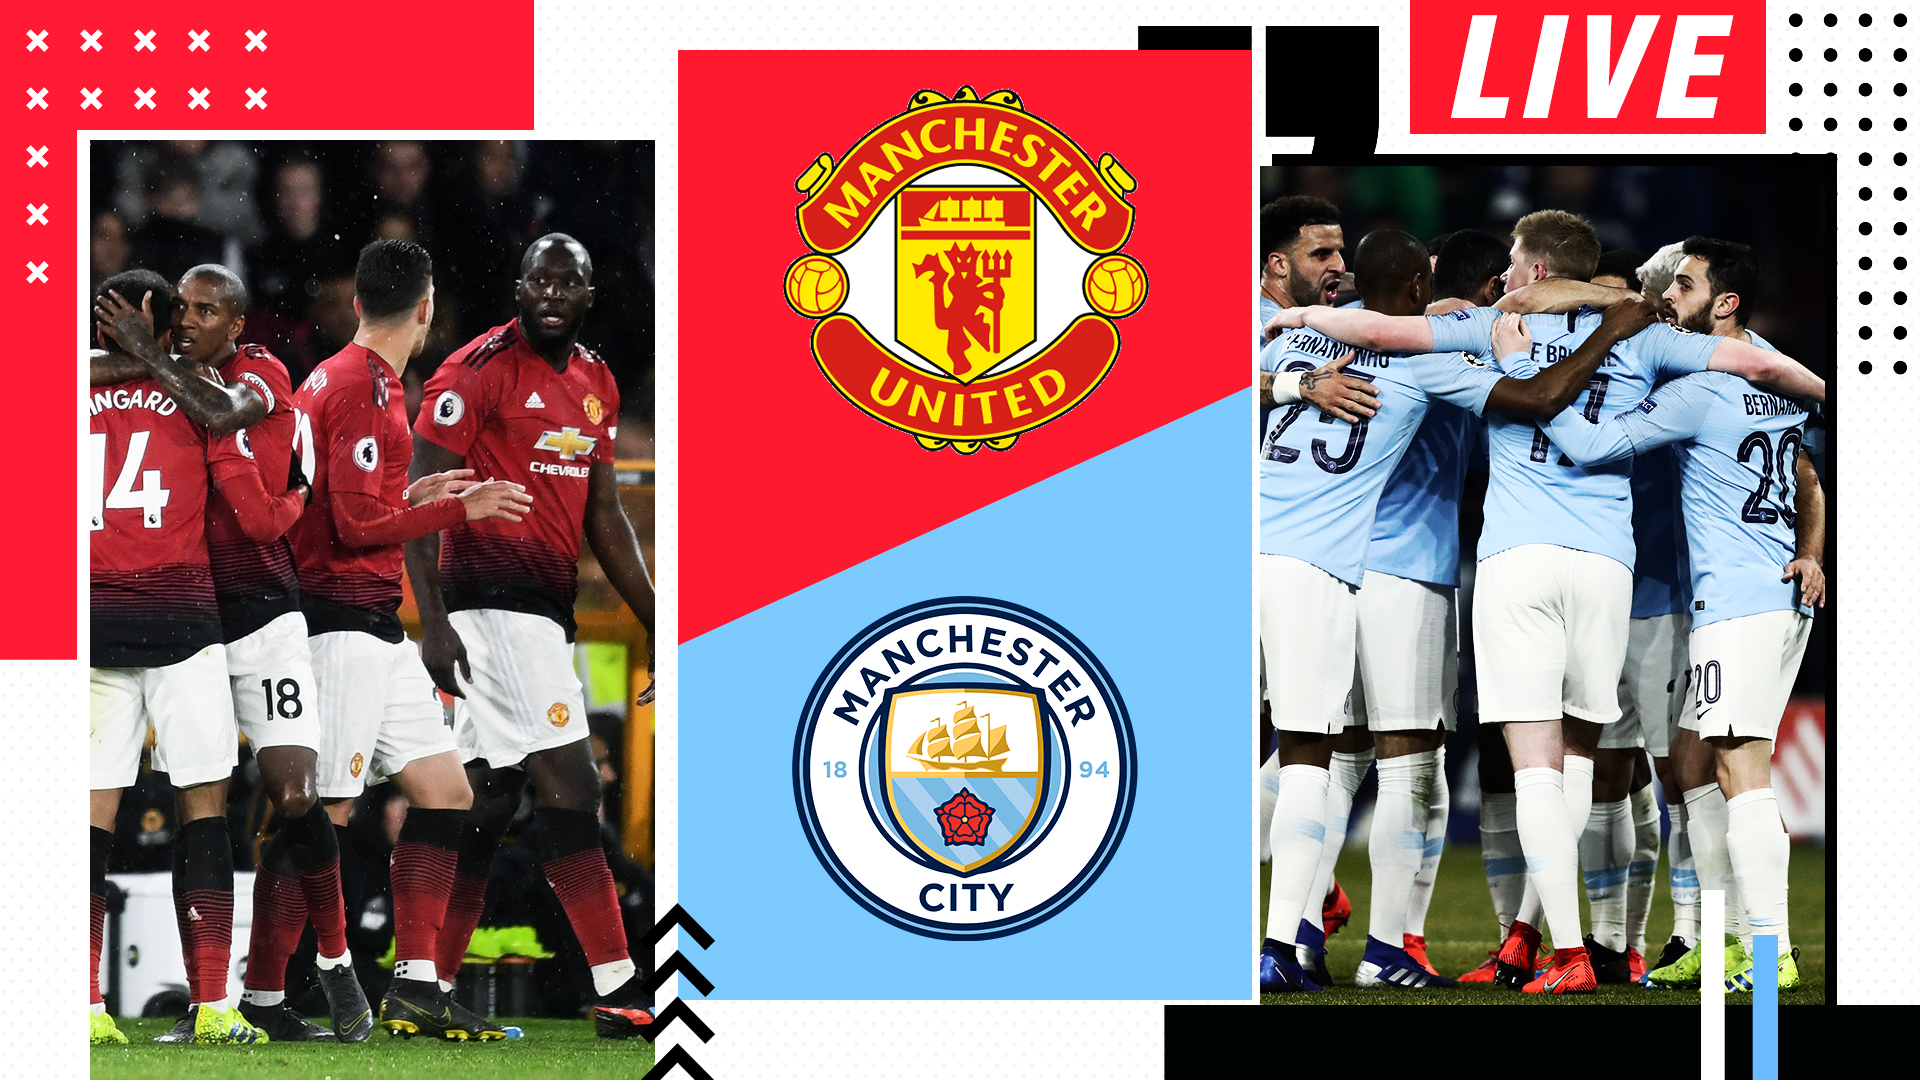 manchester united-manchester city - photo #8